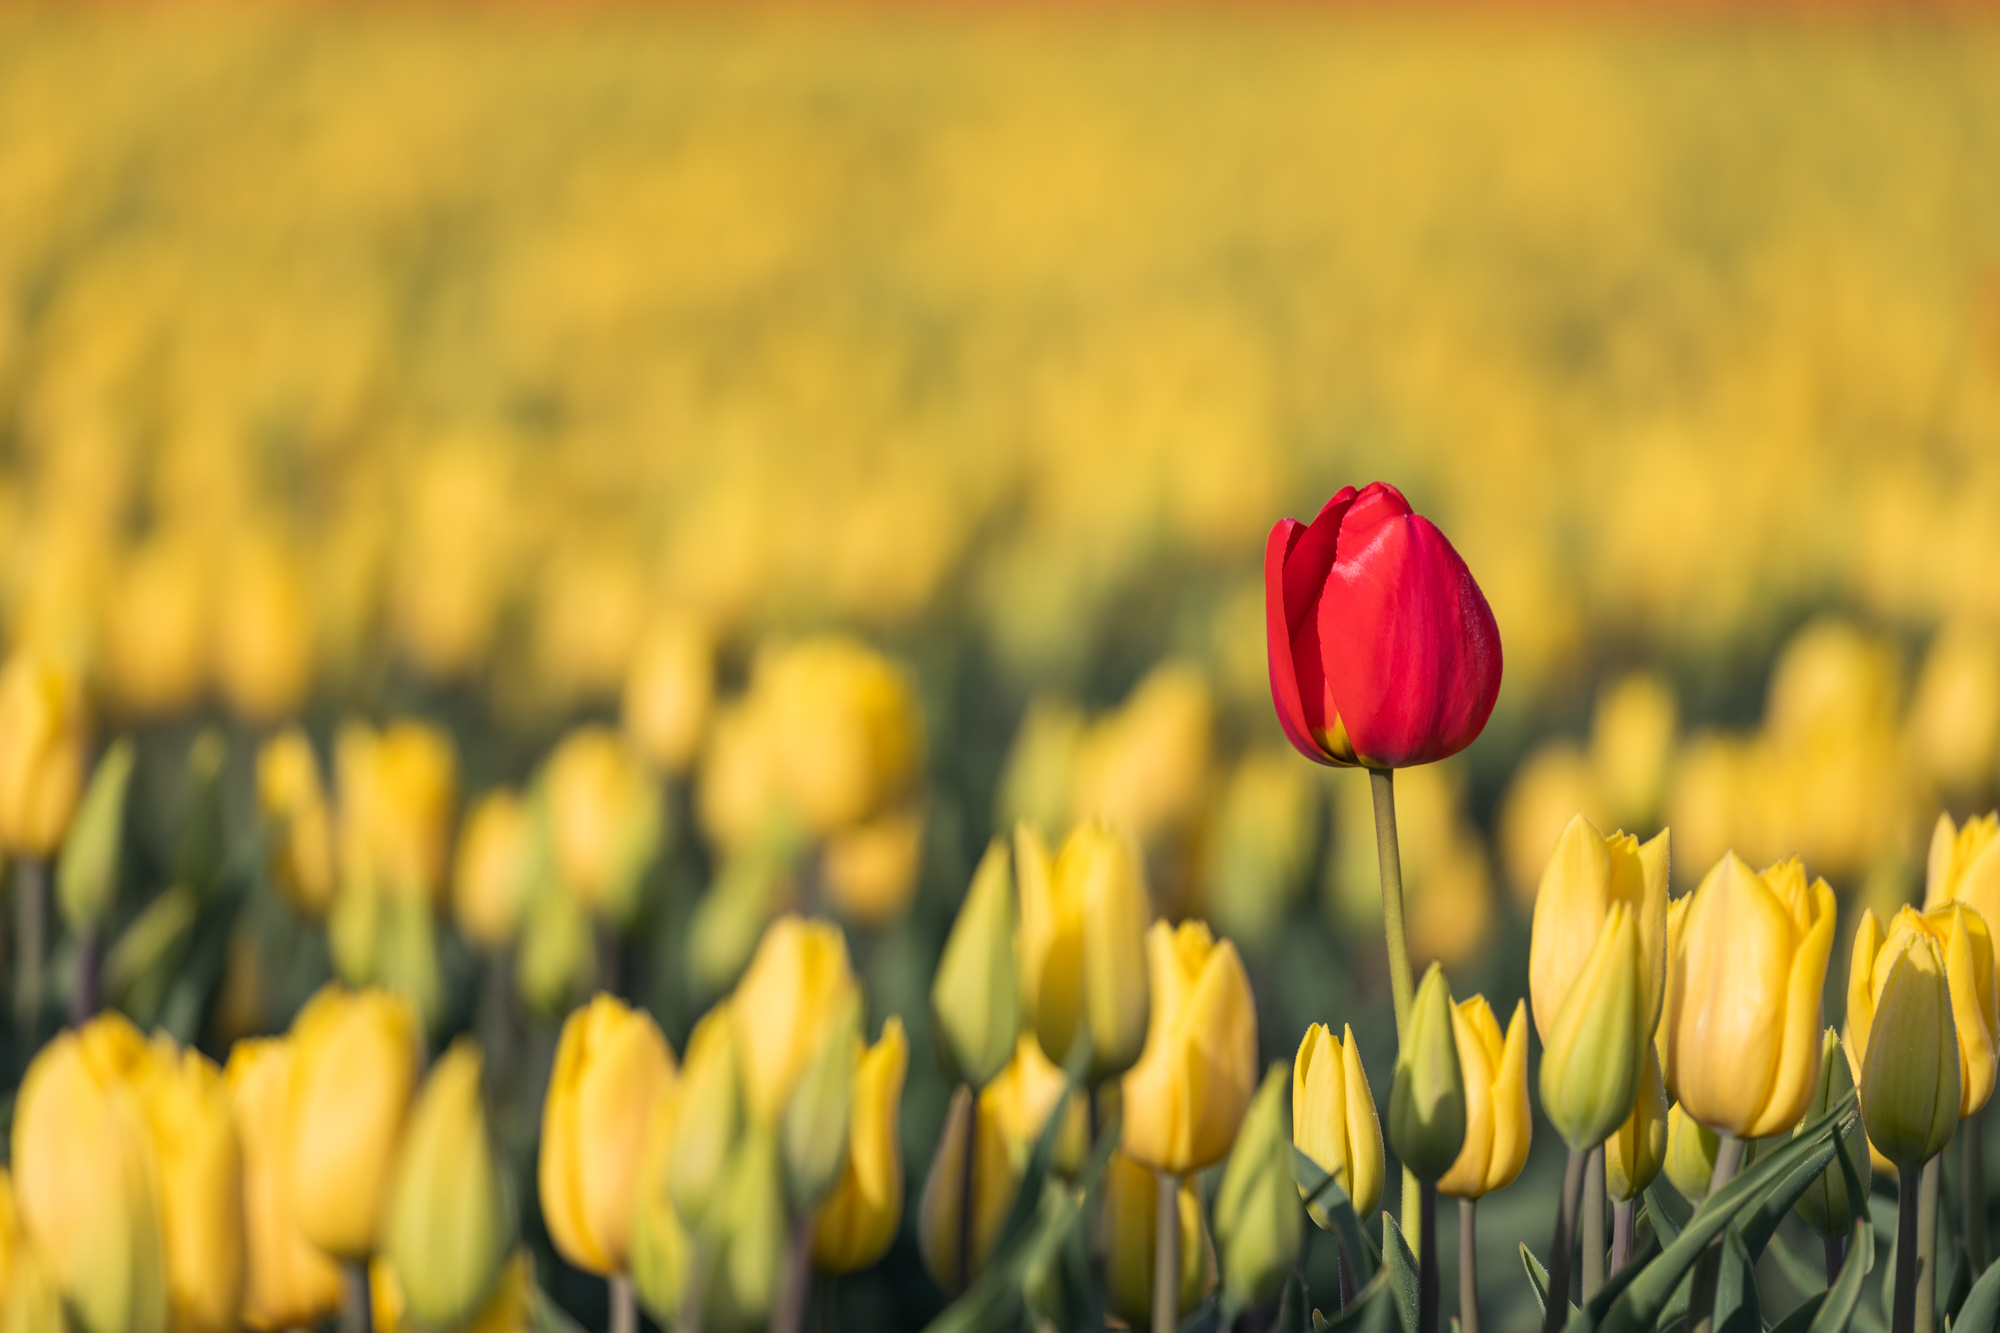 A single red tulip in a field of yellow tulips